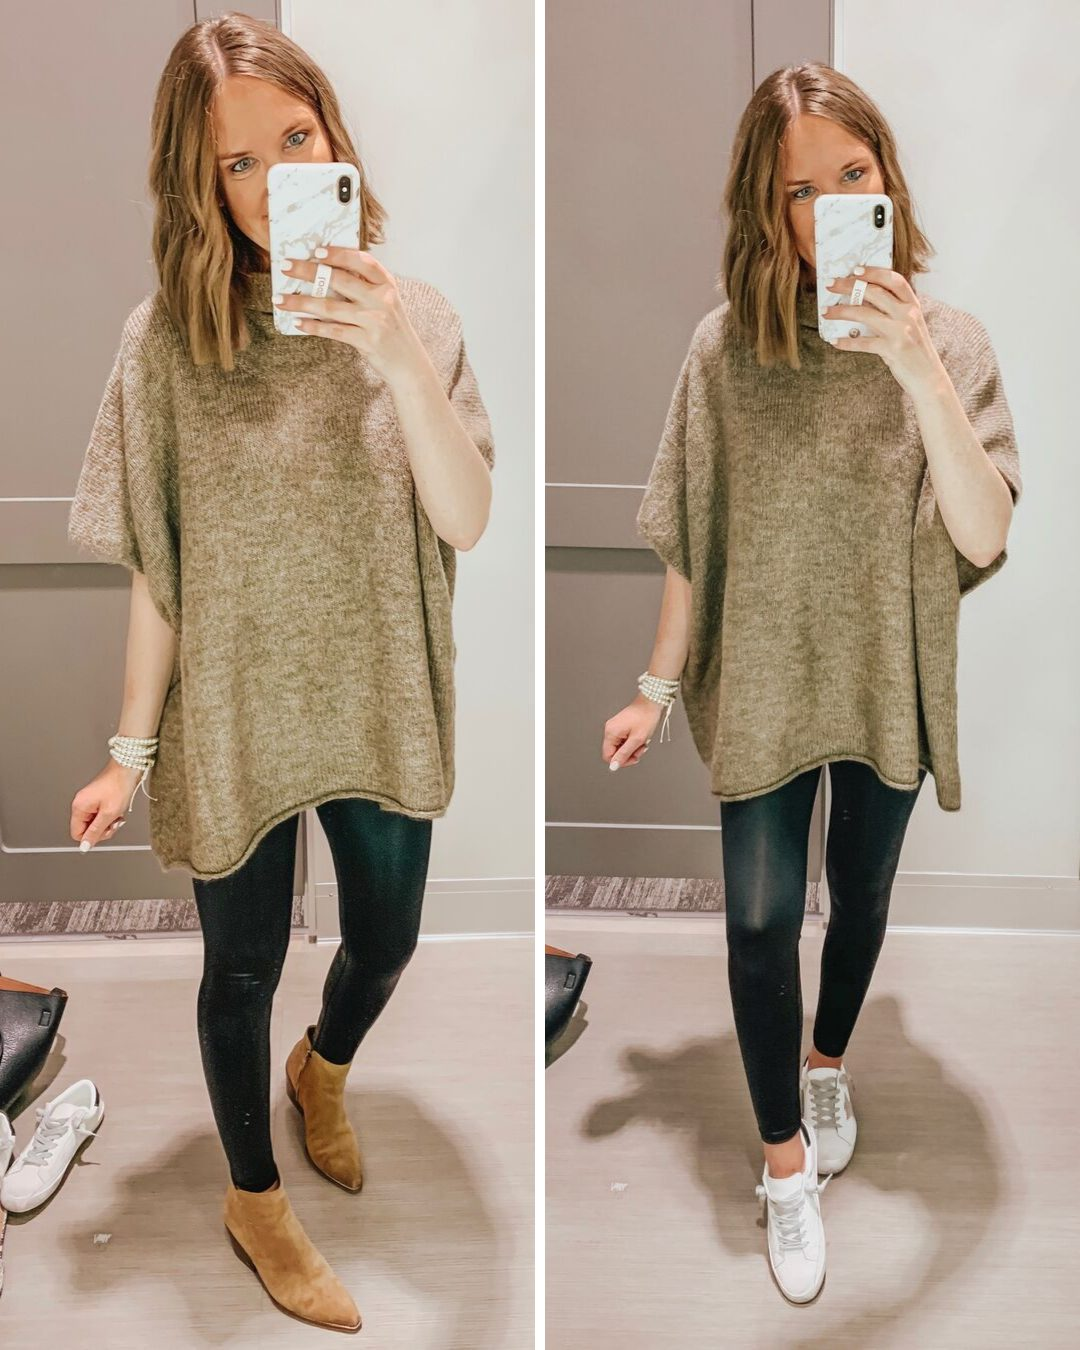 Target fall fashion preview 2019, TARGET SWEATER PONCHO, SPANX LEGGINGS DUPES